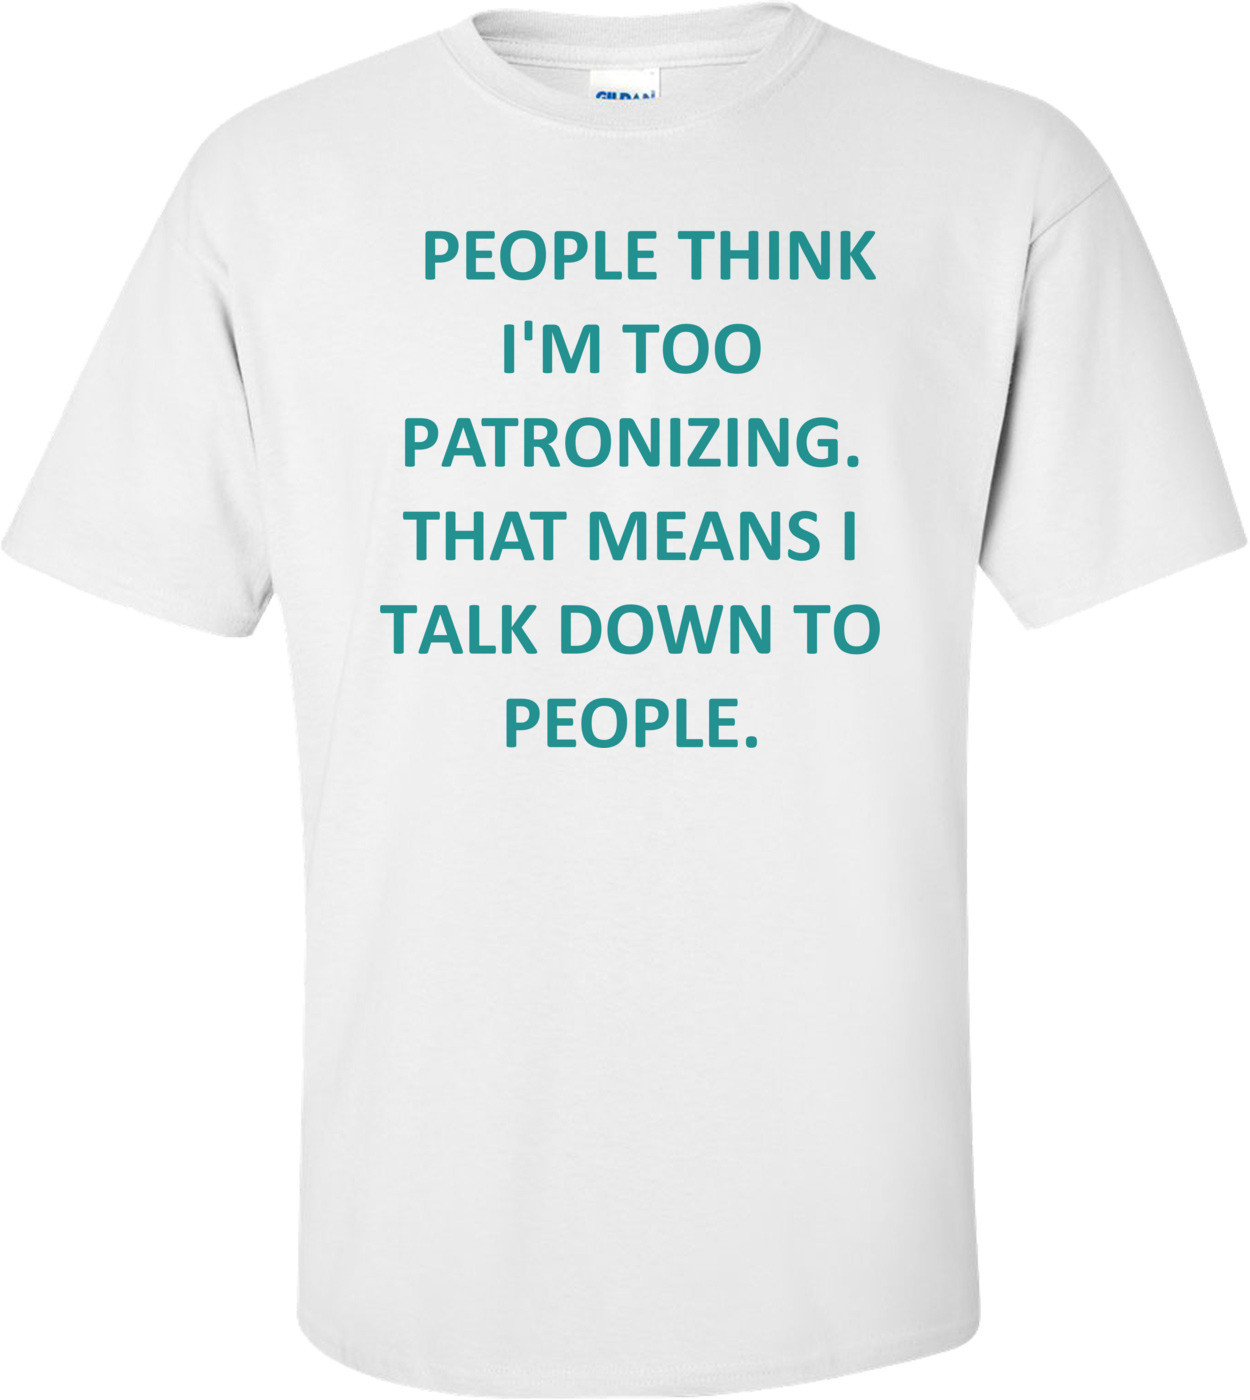 PEOPLE THINK I'M TOO PATRONIZING. THAT MEANS I TALK DOWN TO PEOPLE. Shirt